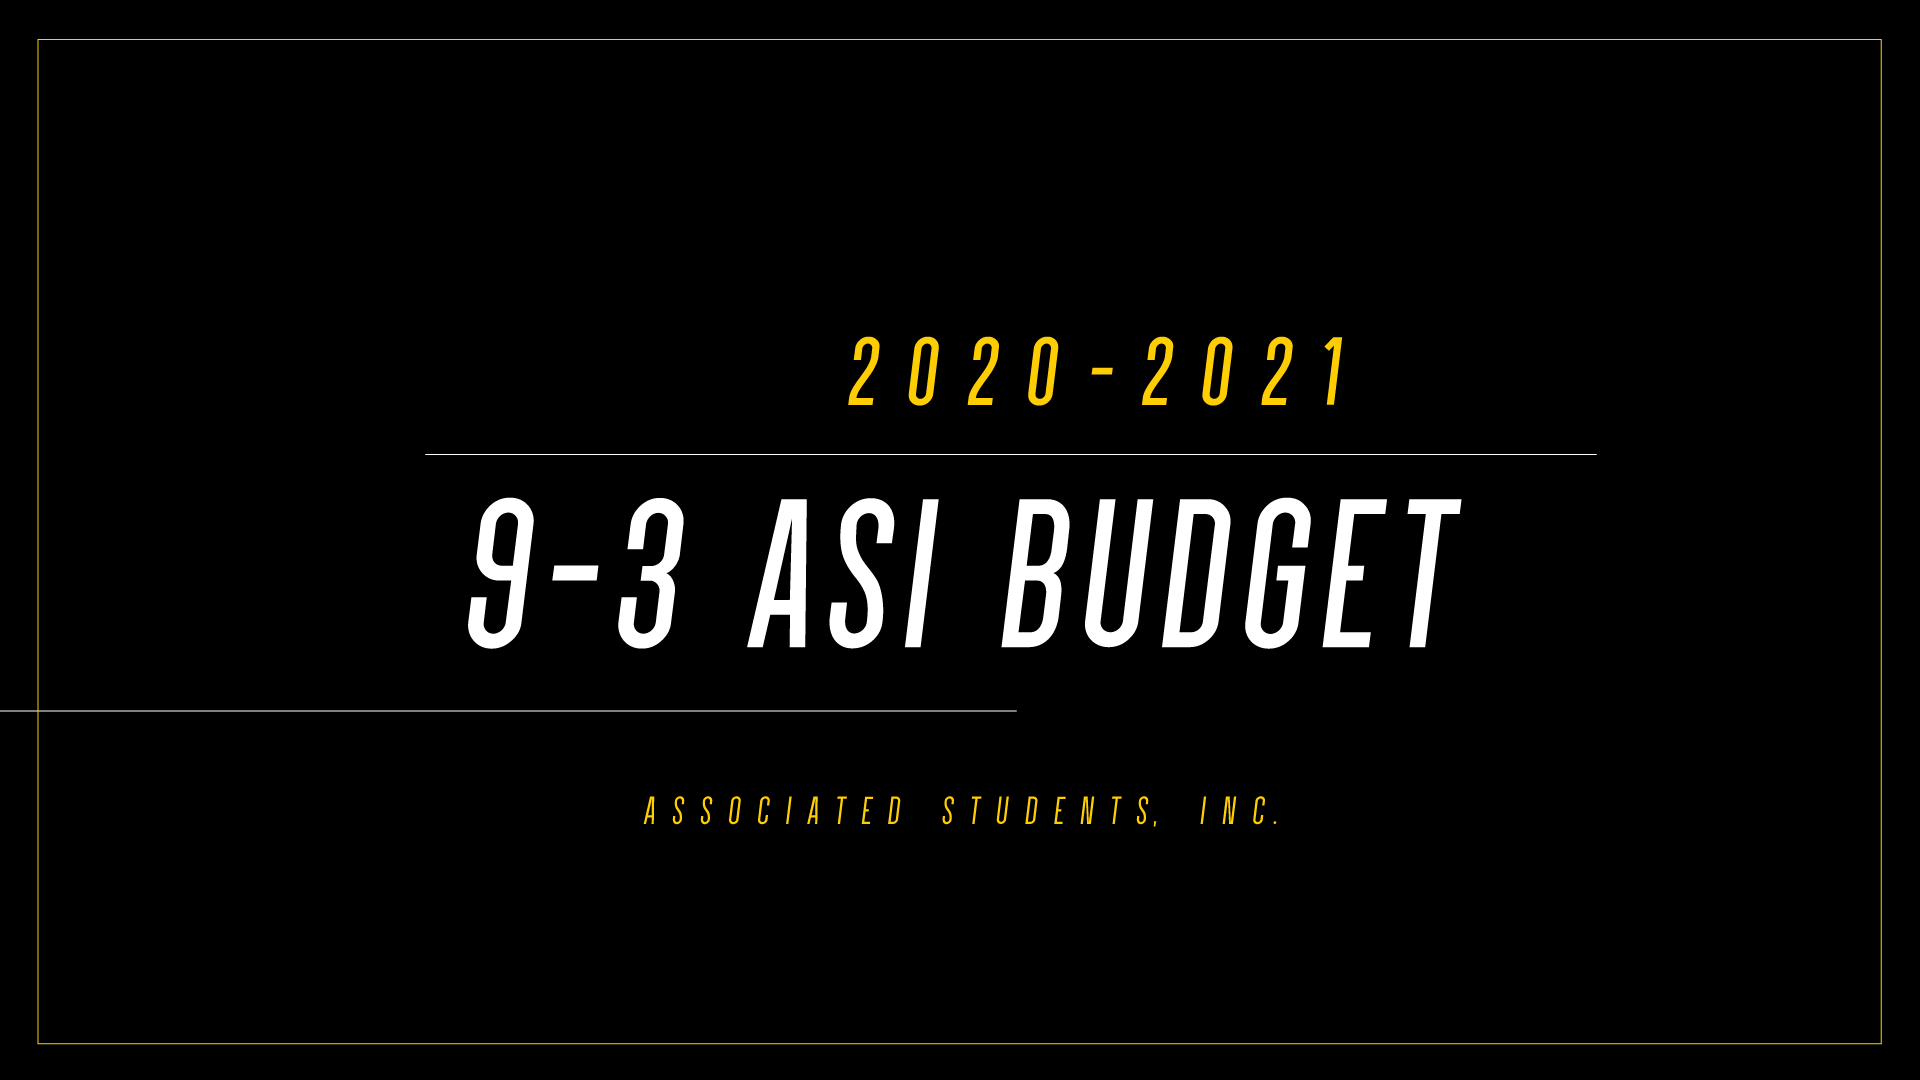 2020-2021 | Approved 9&3 Budget